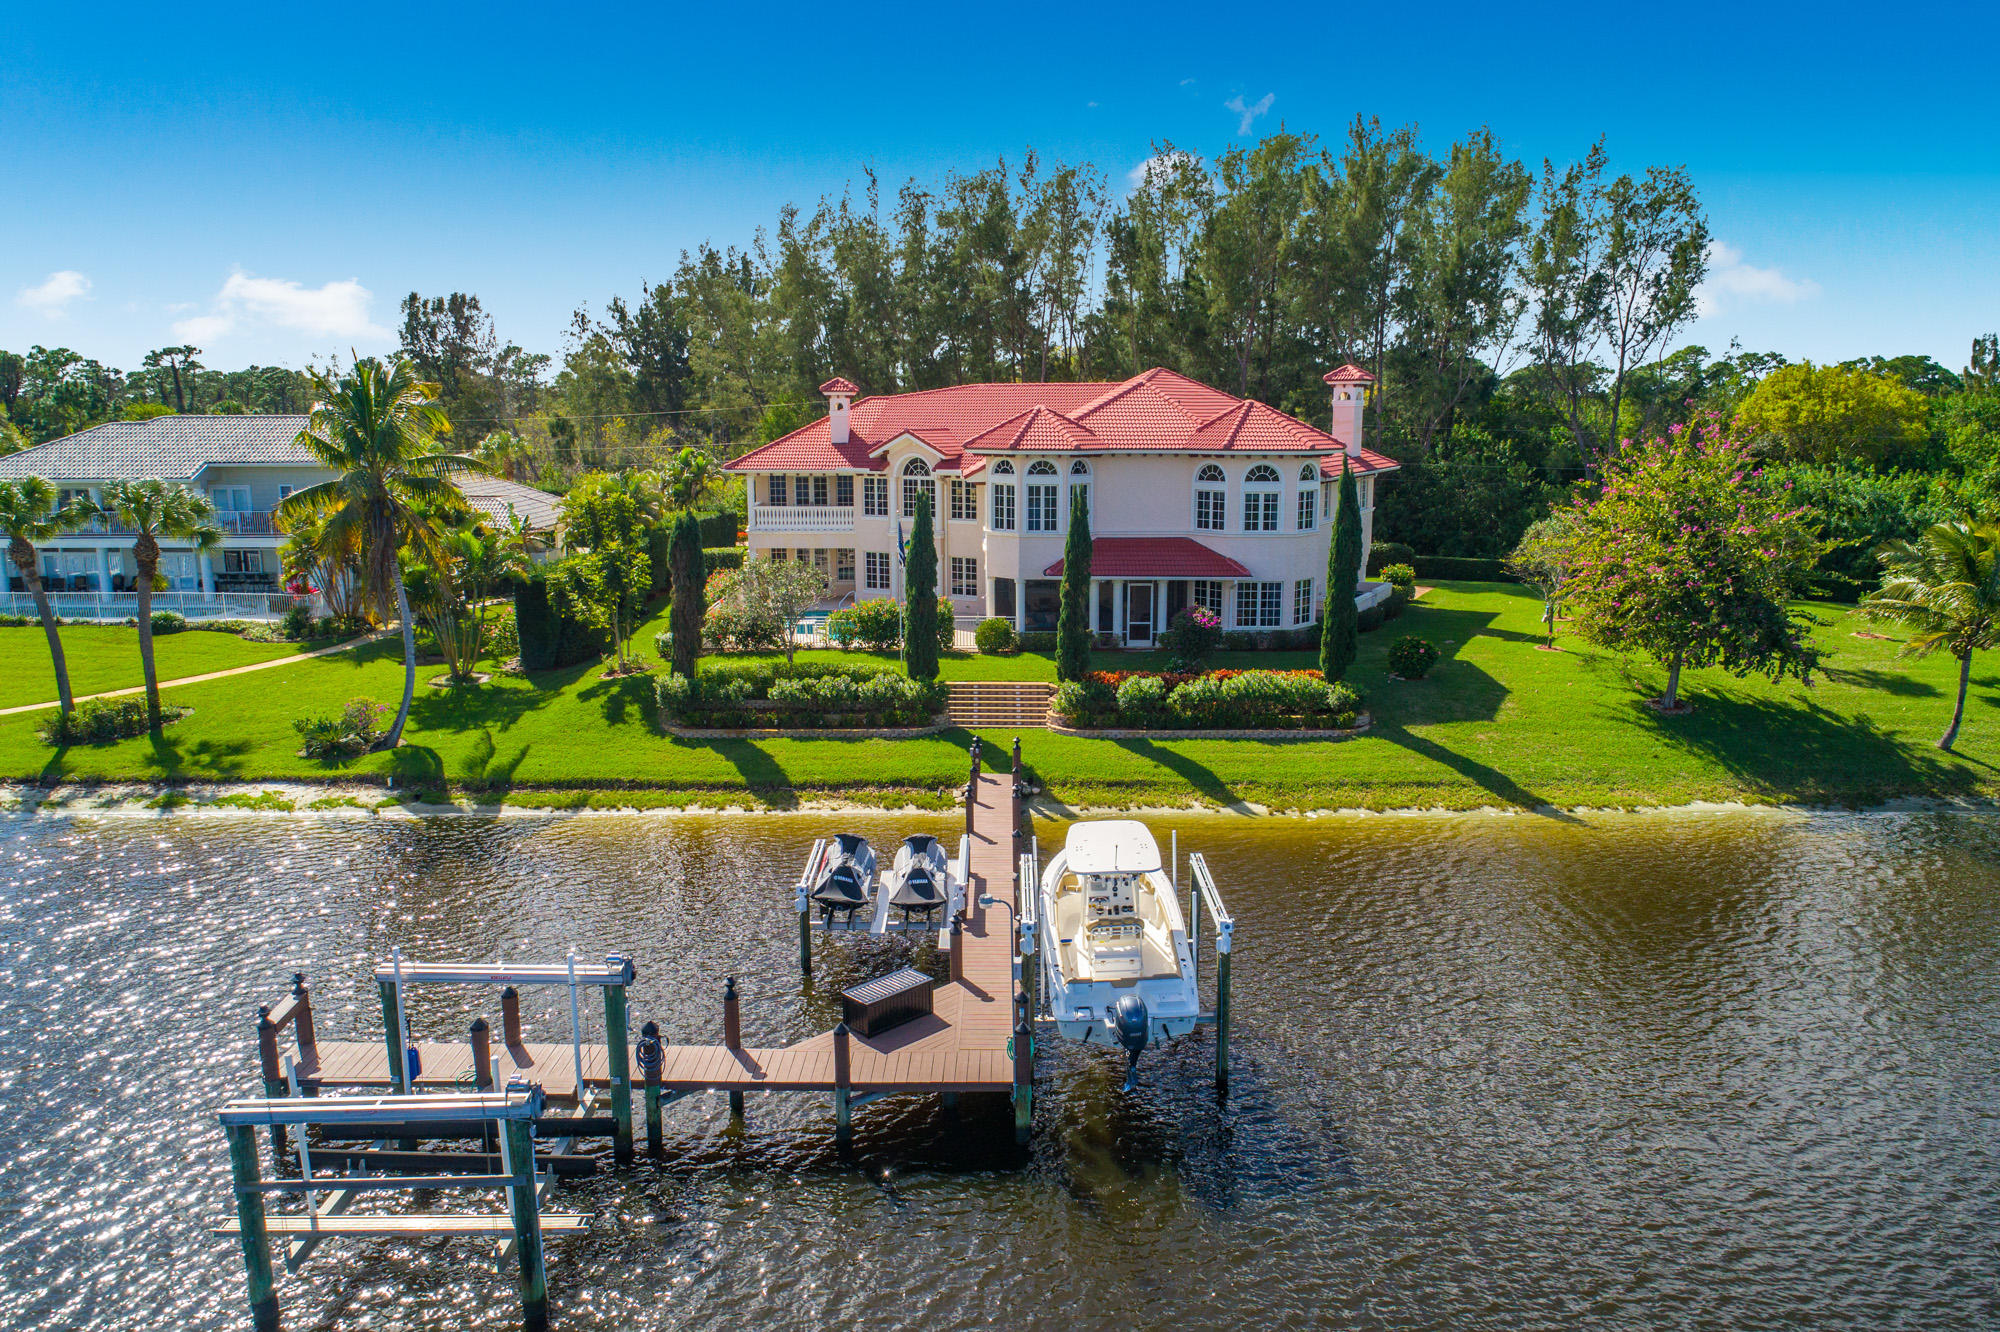 DEEP WATERFRONT ESTATE! Discover this MAGNIFICENT home located on the Saint Lucie River with dockage for multiple boats. This very private TROPICAL OASIS is built with the absolute finest of finishes. With just under 7500 under air living square feet, there is room for the entire family plus guests. The home is loaded with upgrades which include Marble flooring, incredible crown molding/trim details, soaring ceilings, surround sound with multi zones, balconies over looking the beautiful wide water view, enormous 85KW whole house generator, corner lot for privacy, impact glass windows and doors, 3 car garage, and so much much more! This home has approximately 239 feet of river frontage and a tropical landscape to die for that is impeccable maintained. The home also features a large screened in patio to relax and unwind on. Bay St. Lucie is a Luxury Gated Community with large estate homes in every direction. Do not miss this incredible opportunity to live your best life...